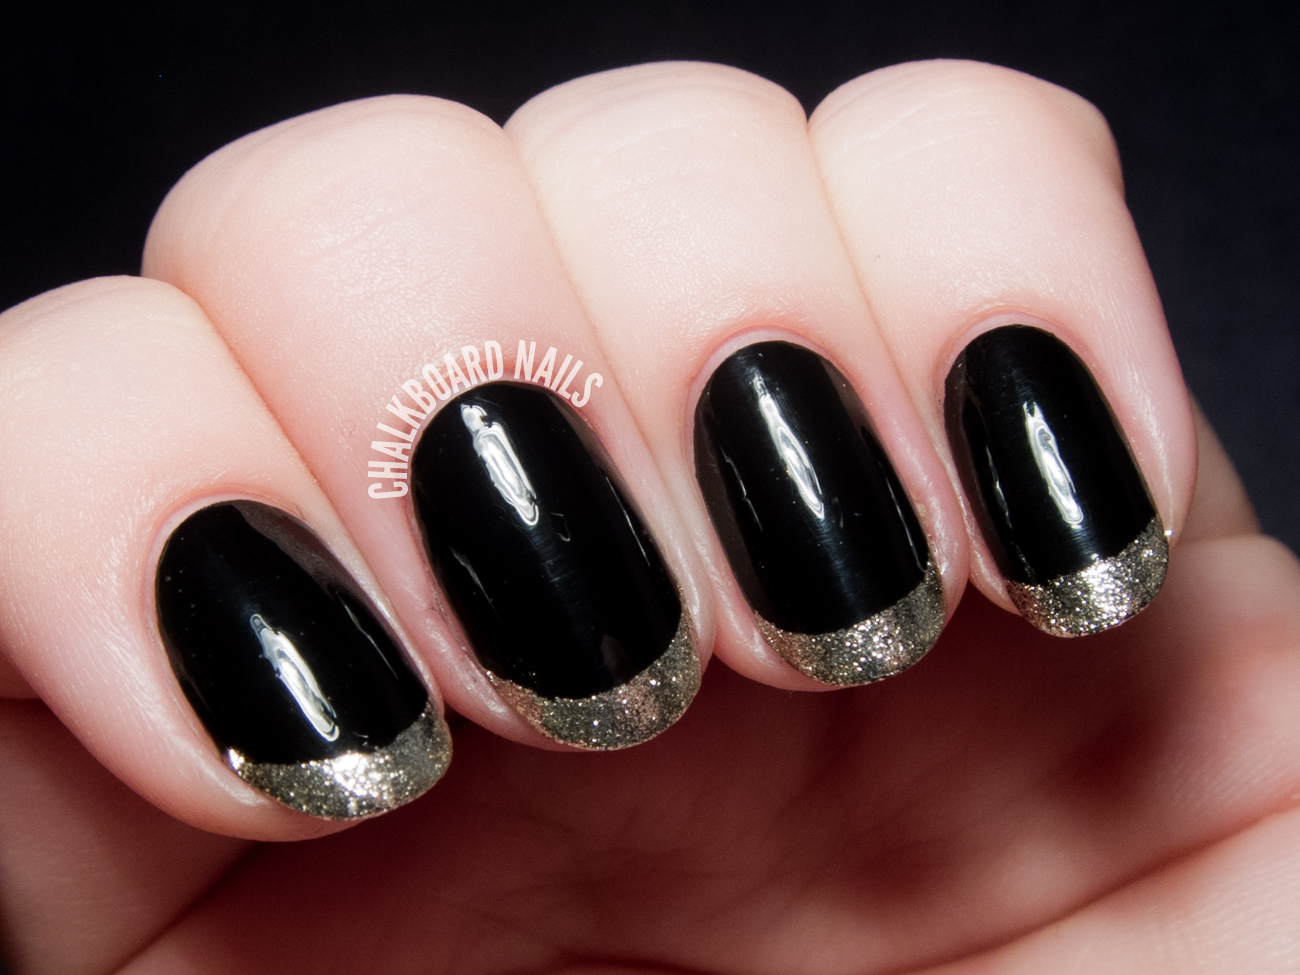 Metallic gold French tips by @chalkboardnails